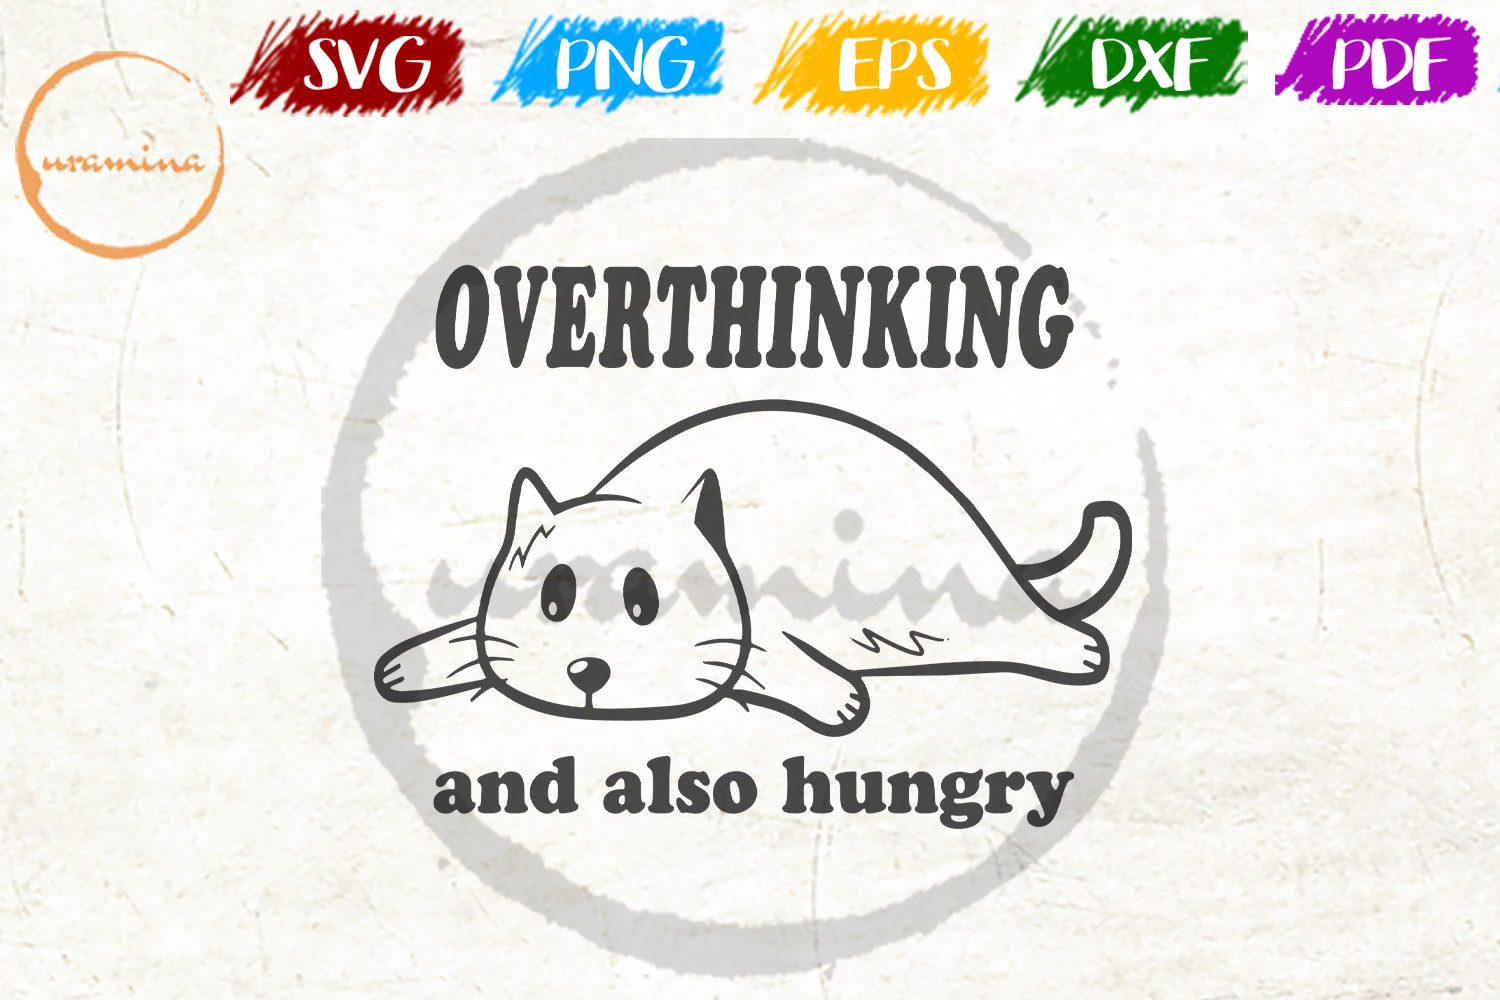 Download Free Overthinking And Also Hungry Graphic By Uramina Creative Fabrica for Cricut Explore, Silhouette and other cutting machines.